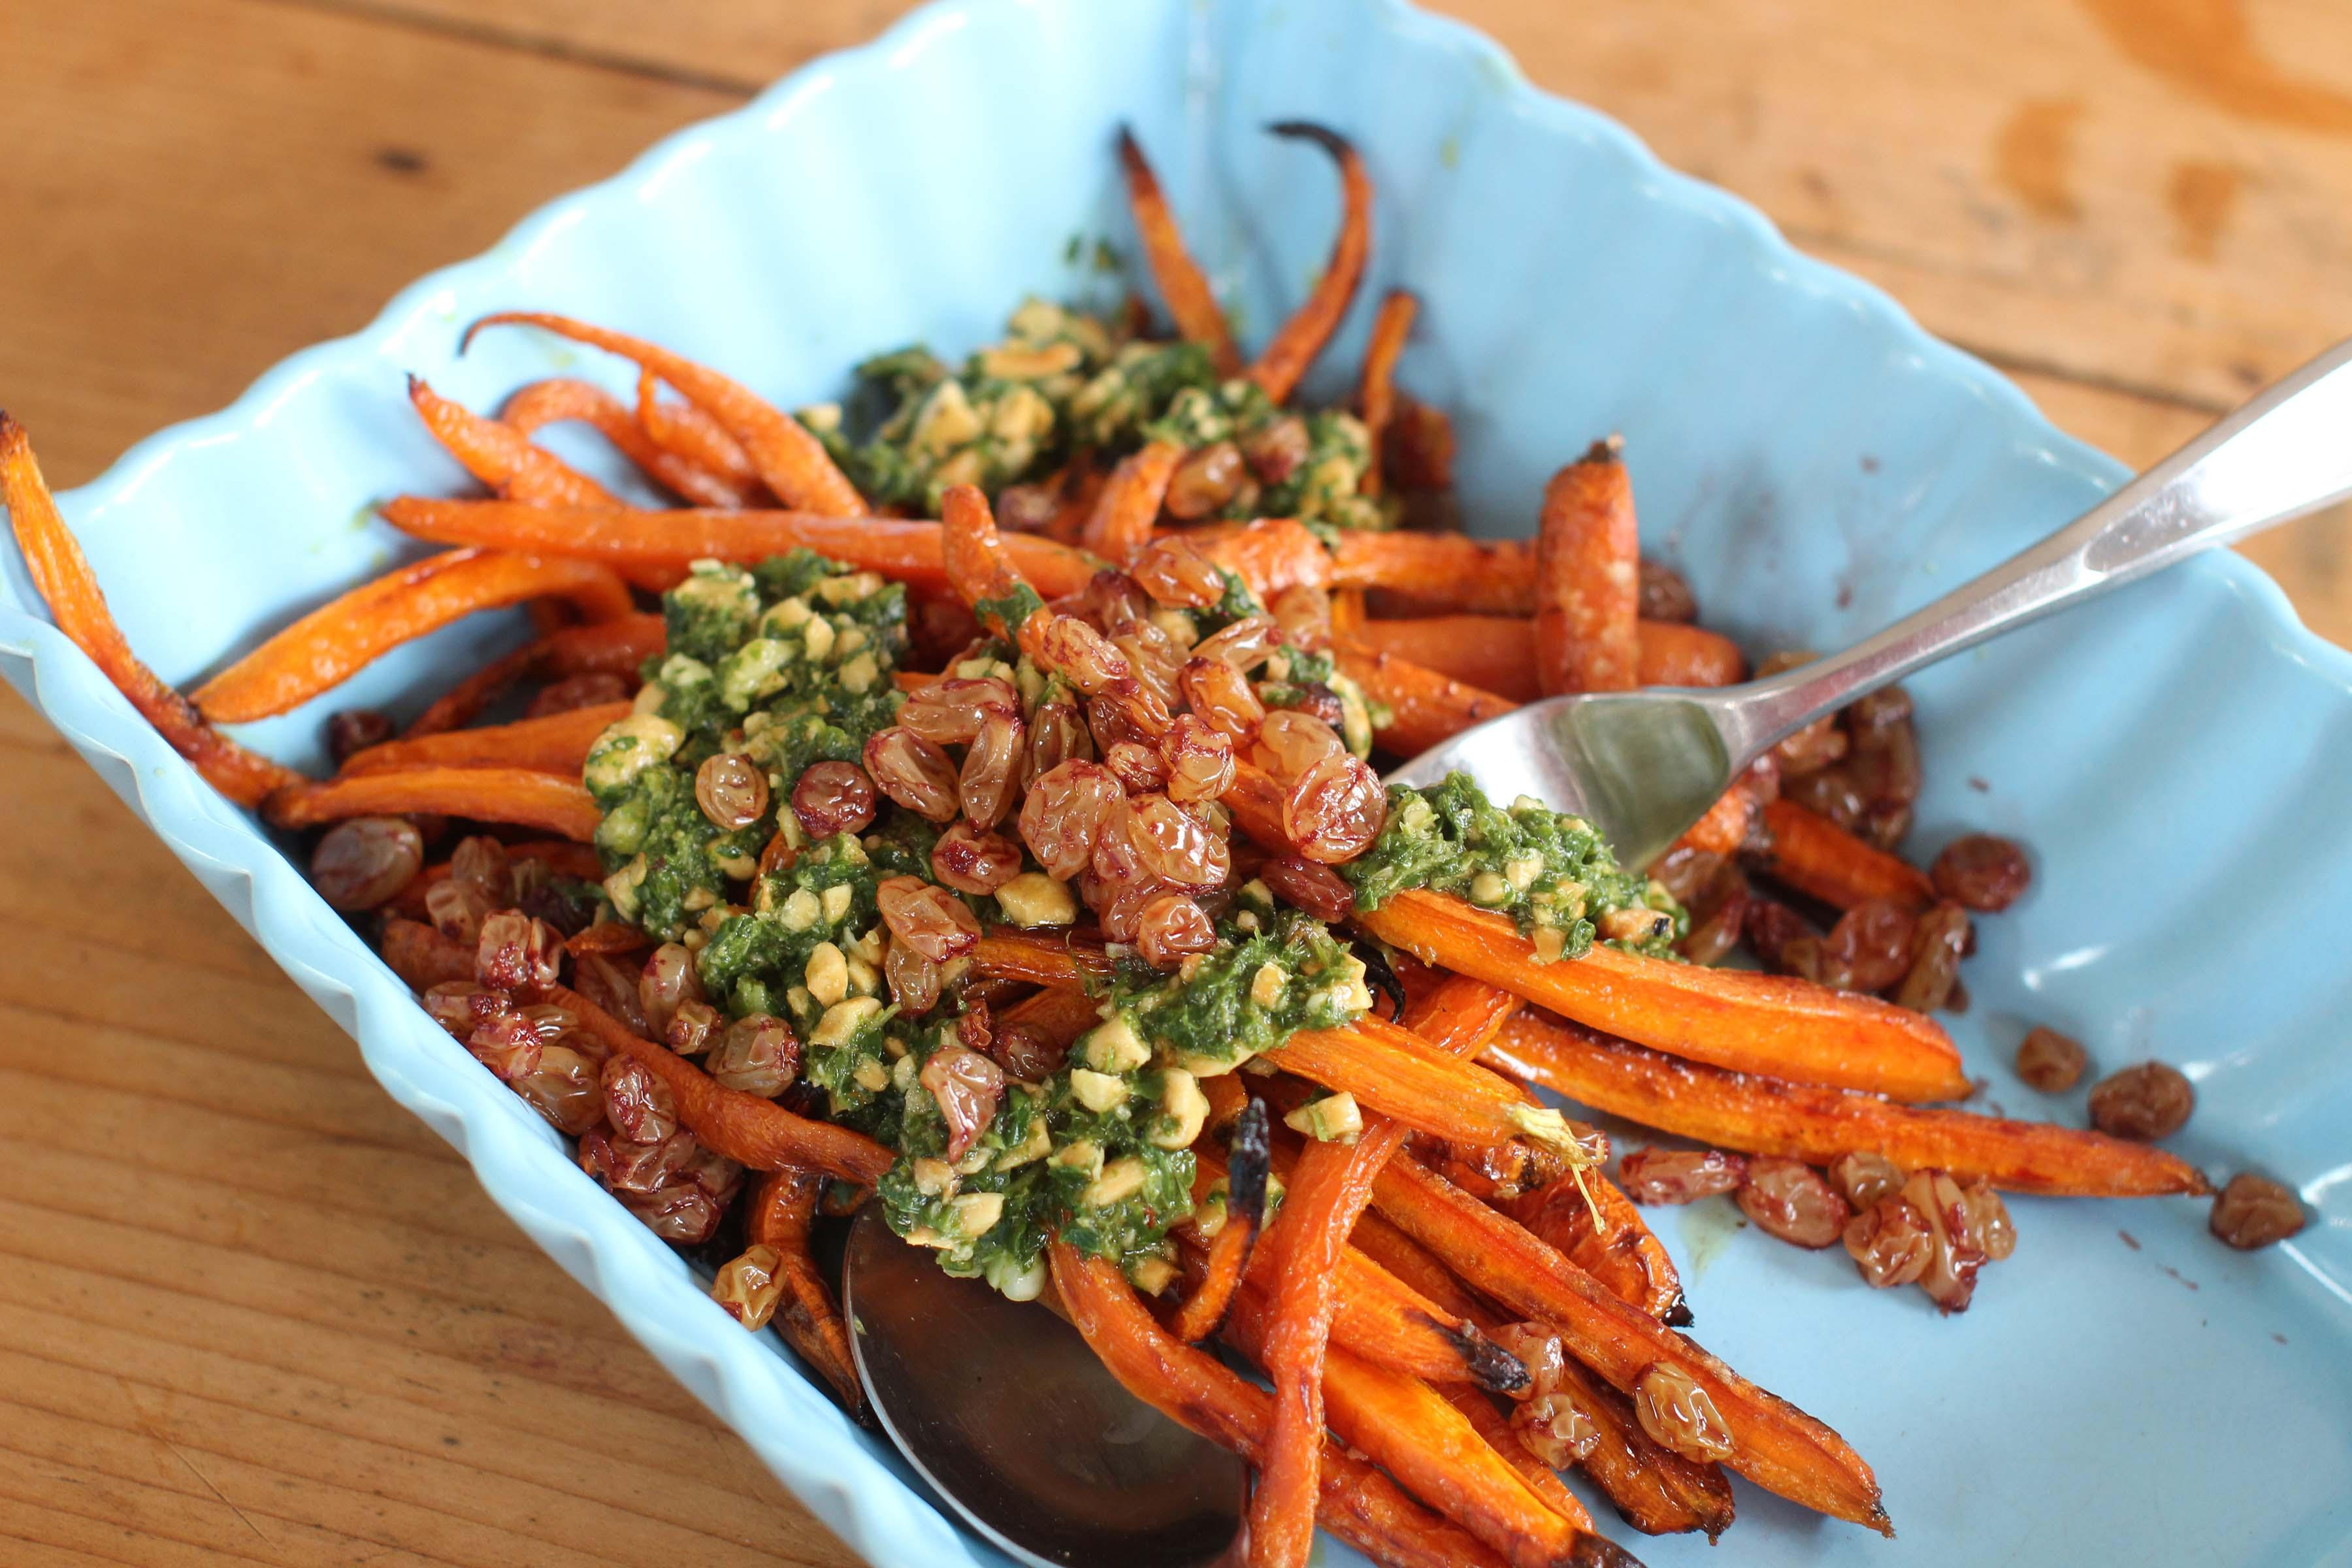 Dill and butter? Dull. Take carrots to a robust new level